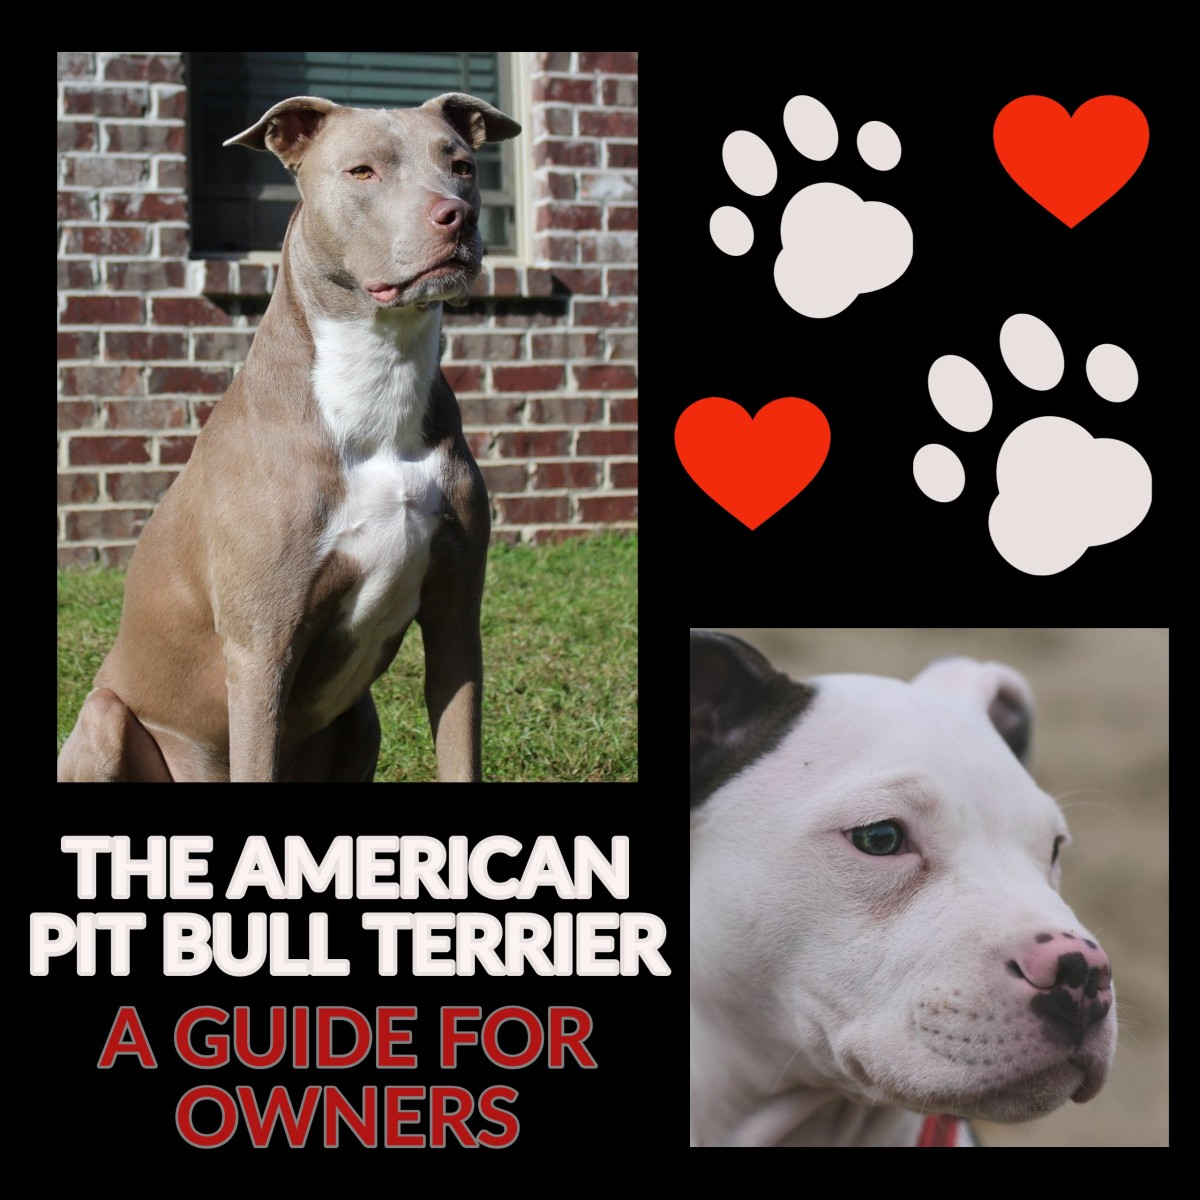 The American Pit Bull Terrier: A Guide for Owners